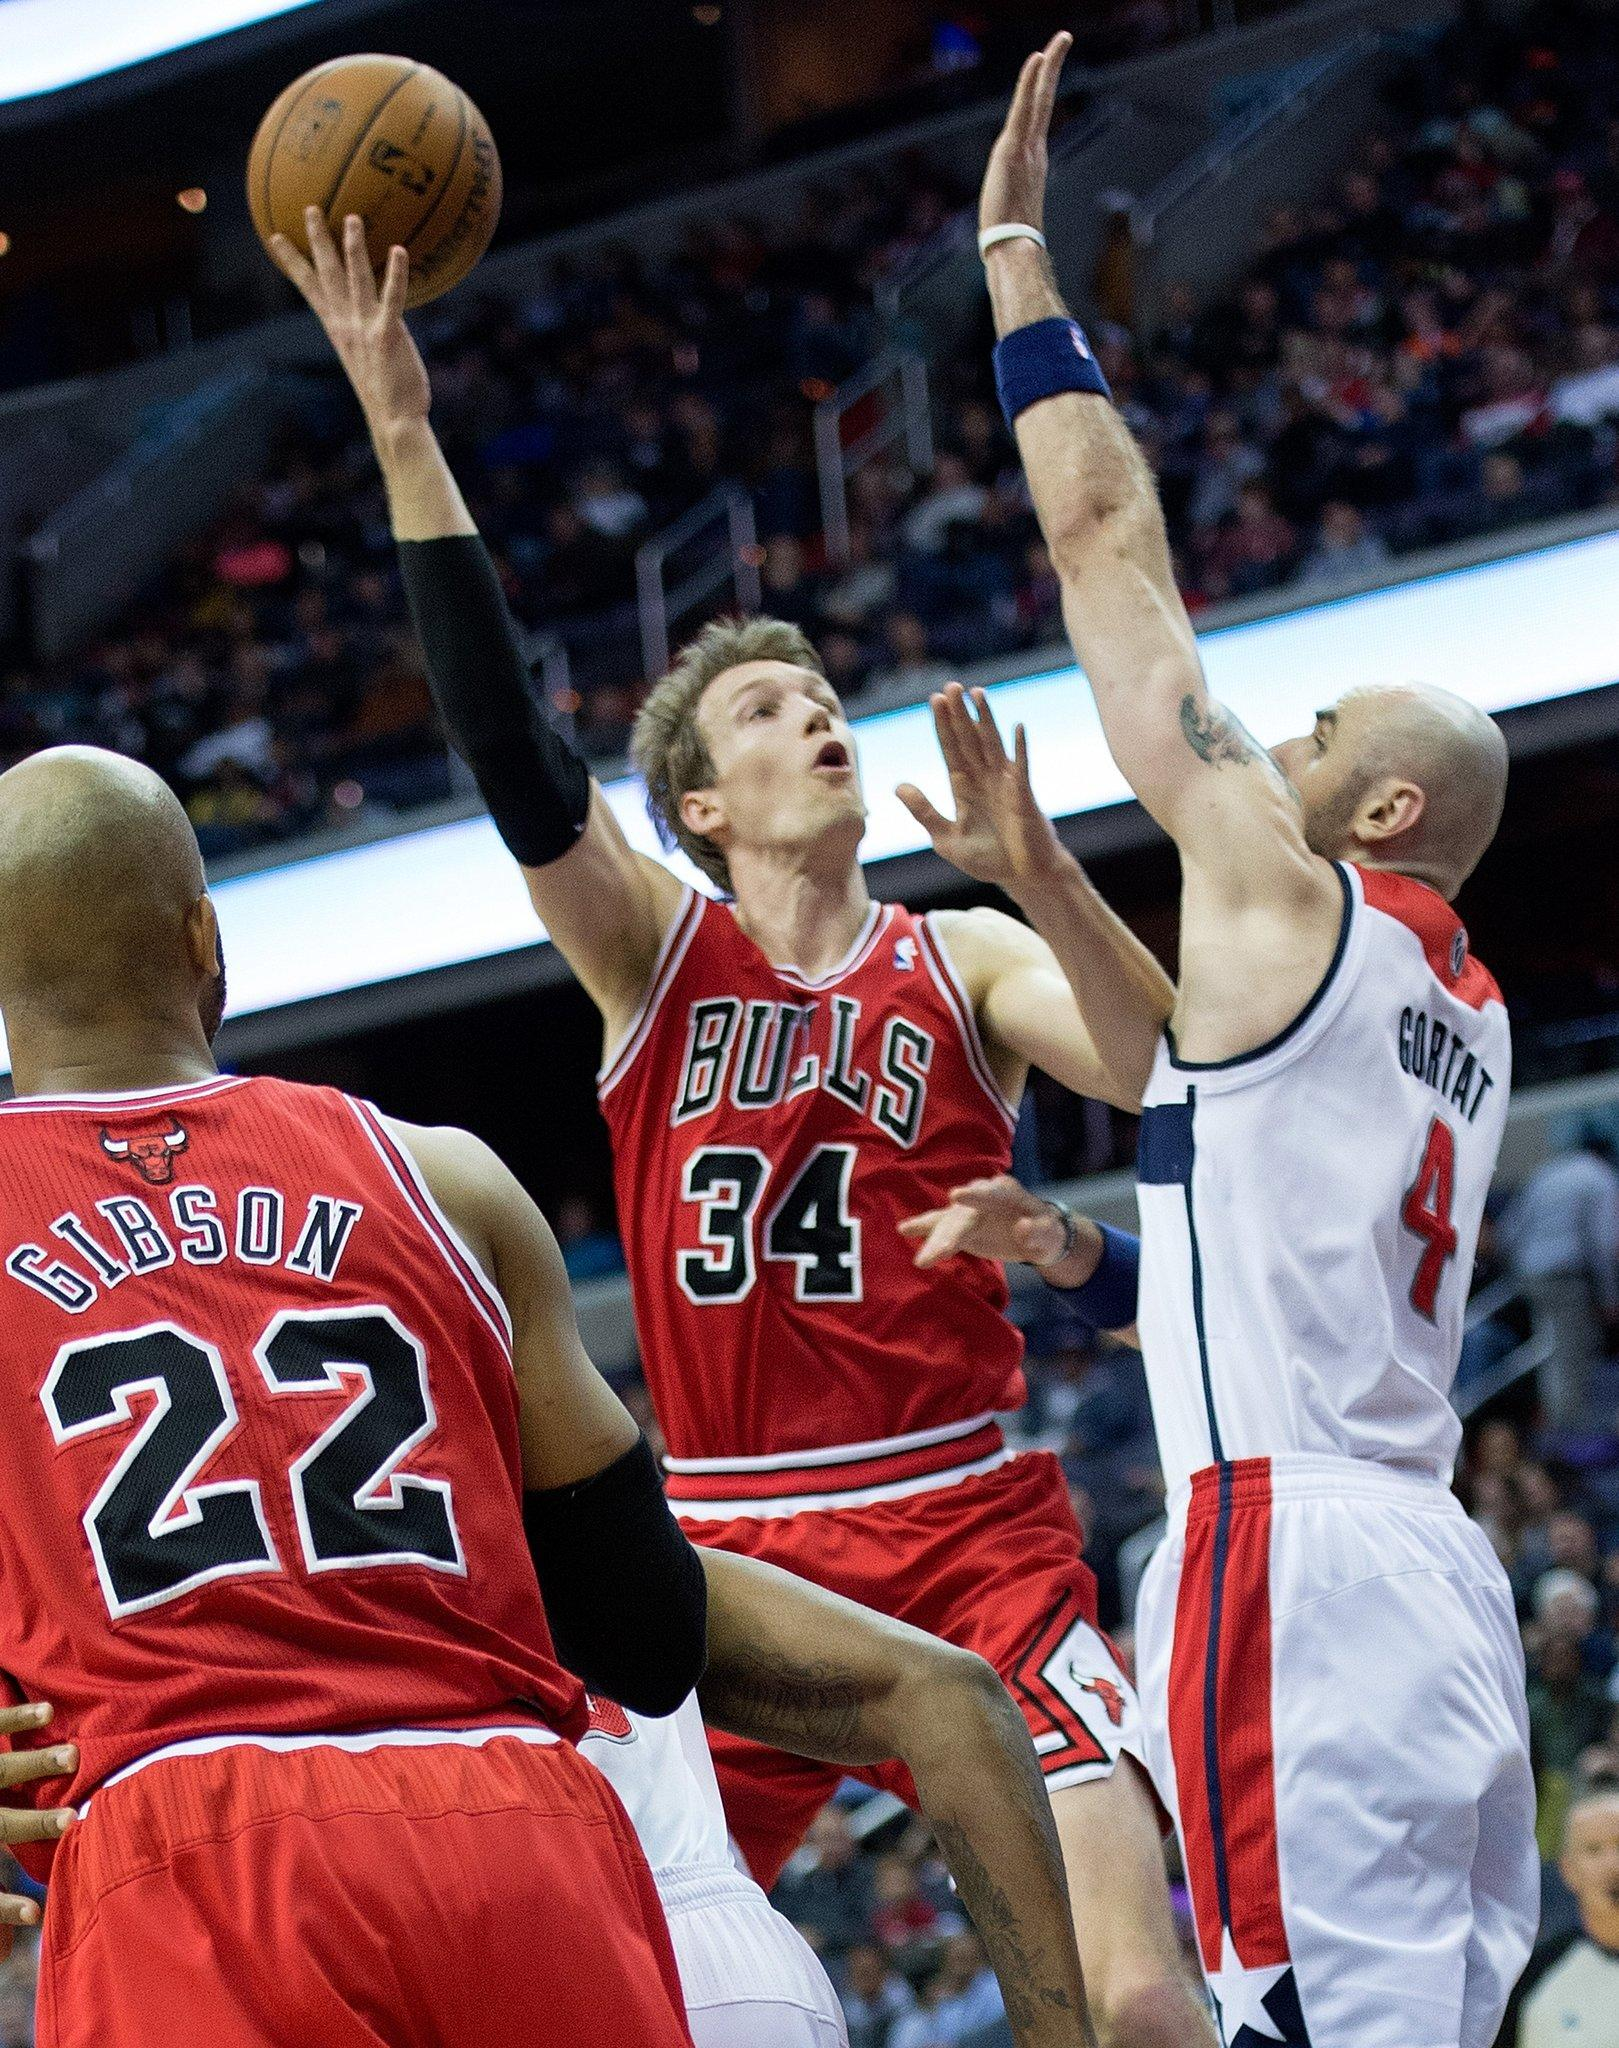 Chicago Bulls small forward Mike Dunleavy (34) scores against Washington Wizards center Marcin Gortat (4) during the first half of their game played at the Verizon Center.